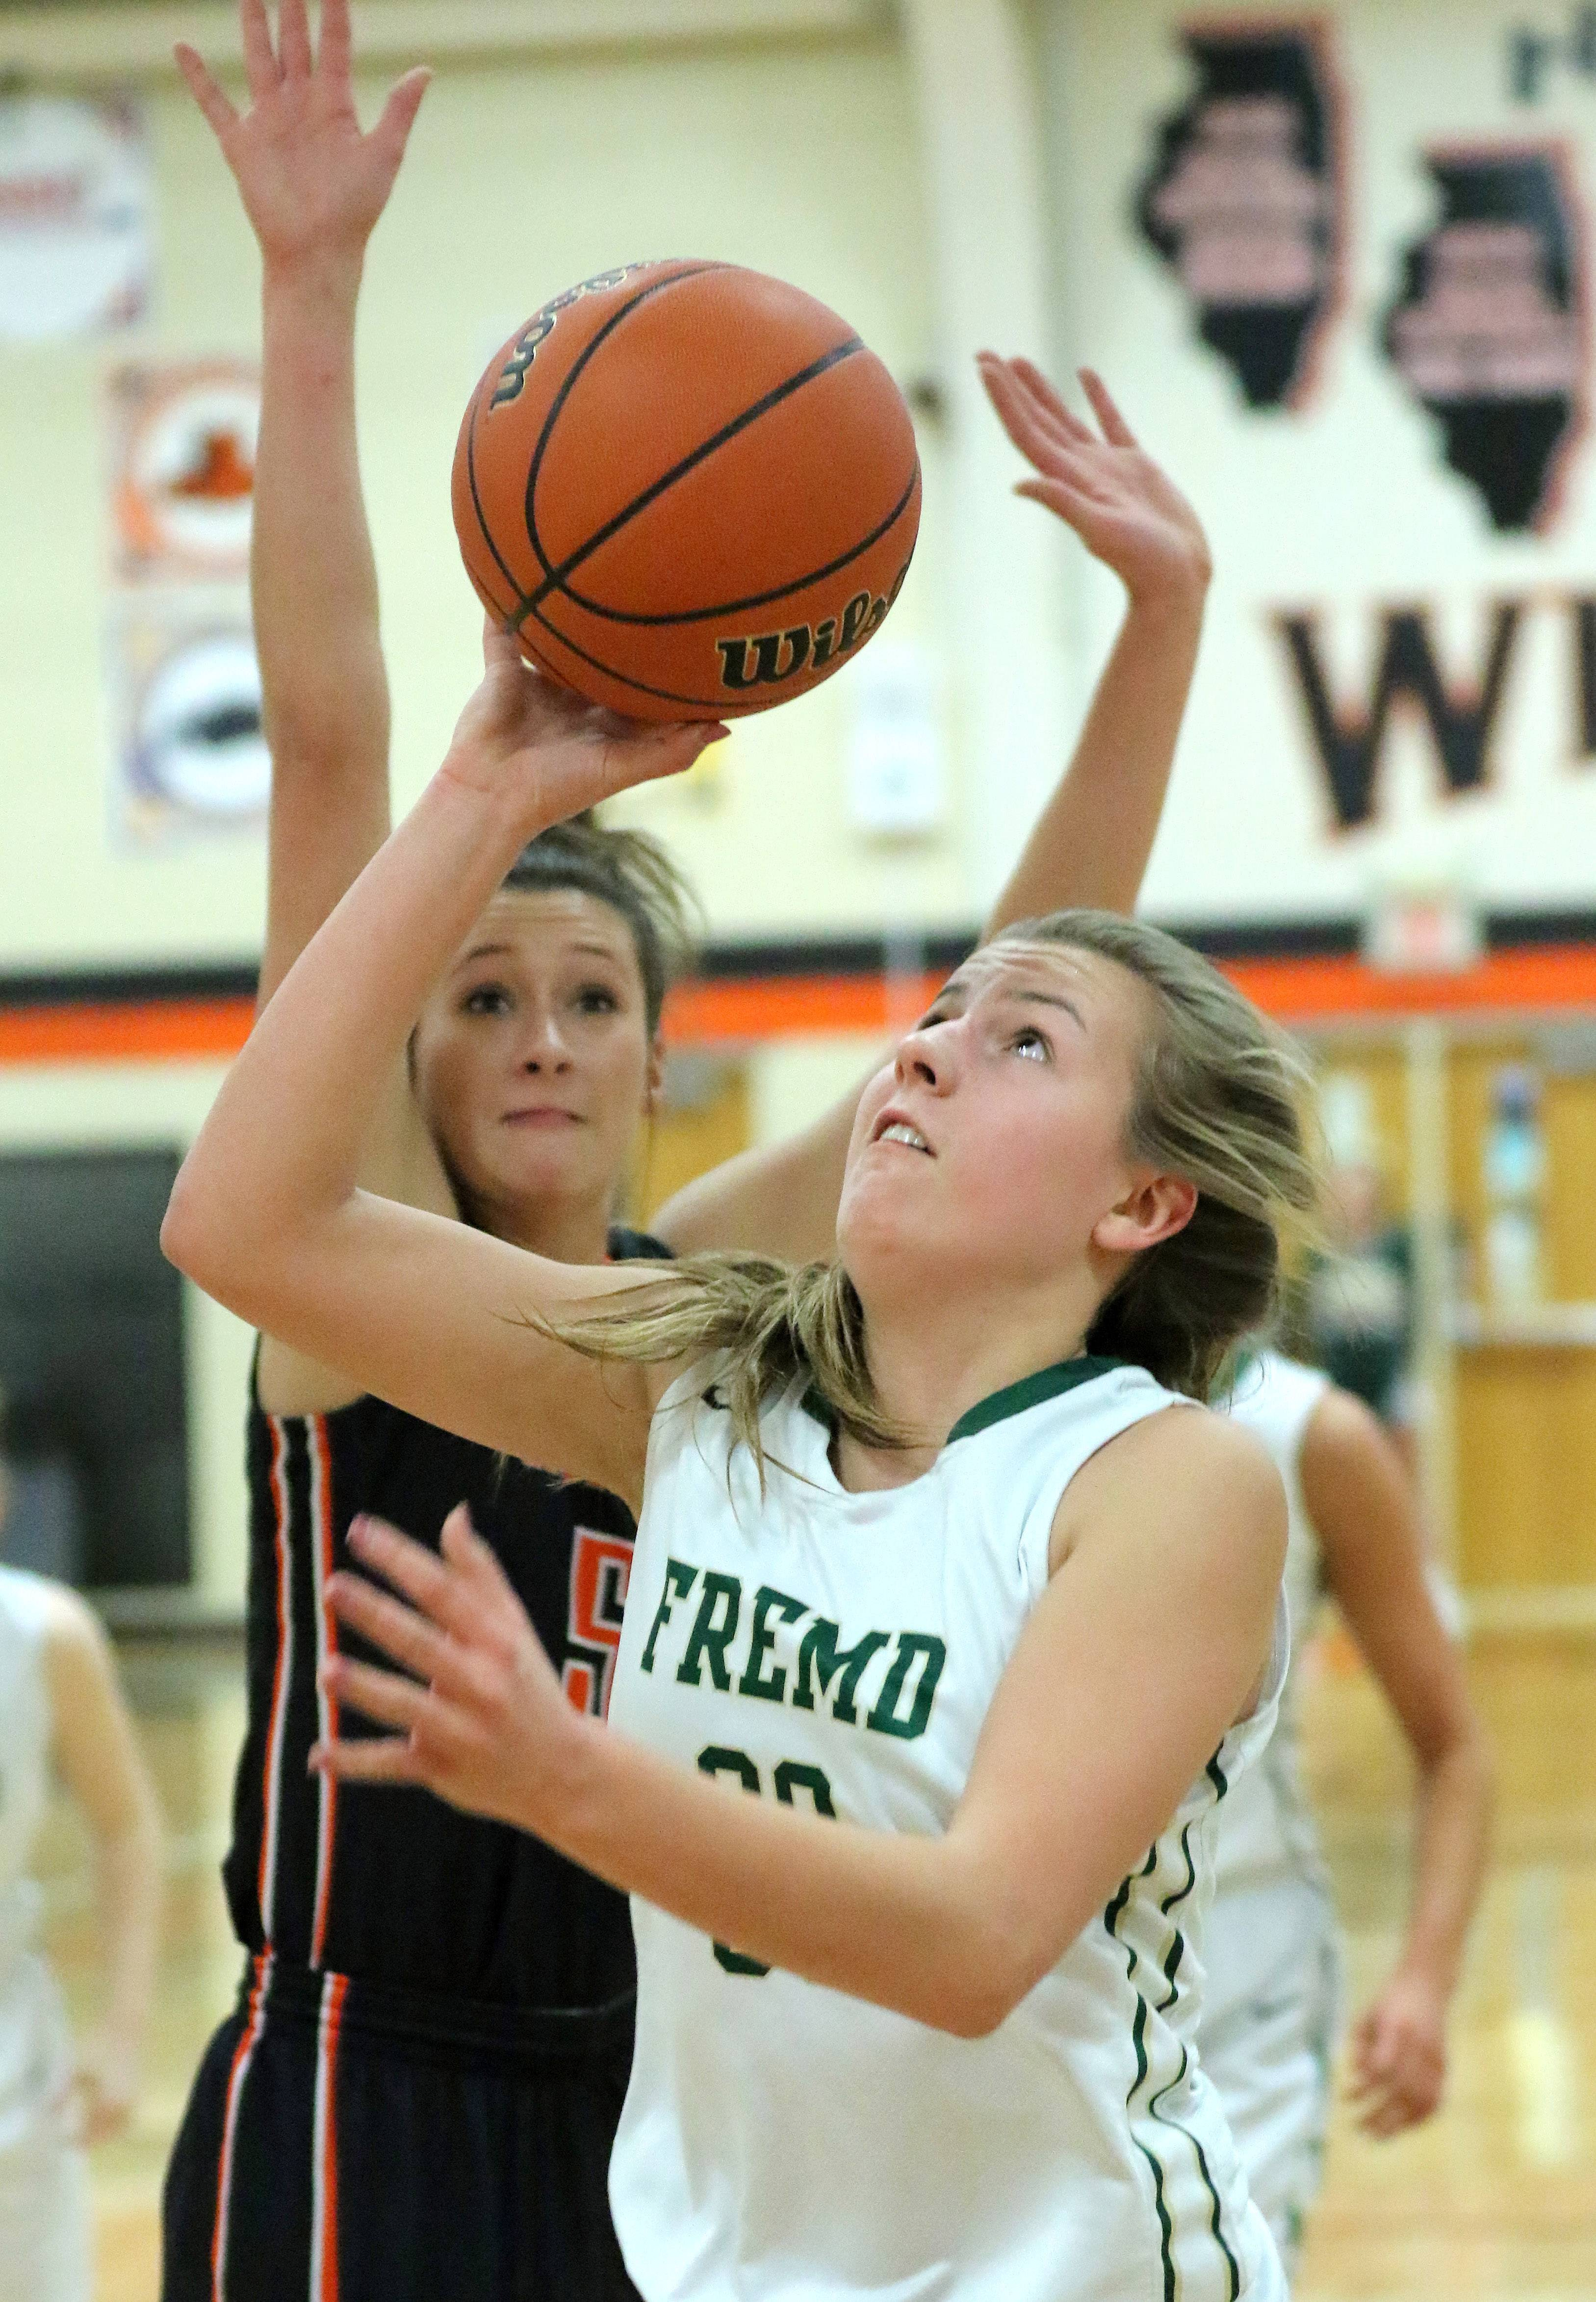 Fremd's Emily Klaczek, right, drives past Libertyville's Claire Keefe during Class 4A sectional semifinal play Monday at Libertyville.